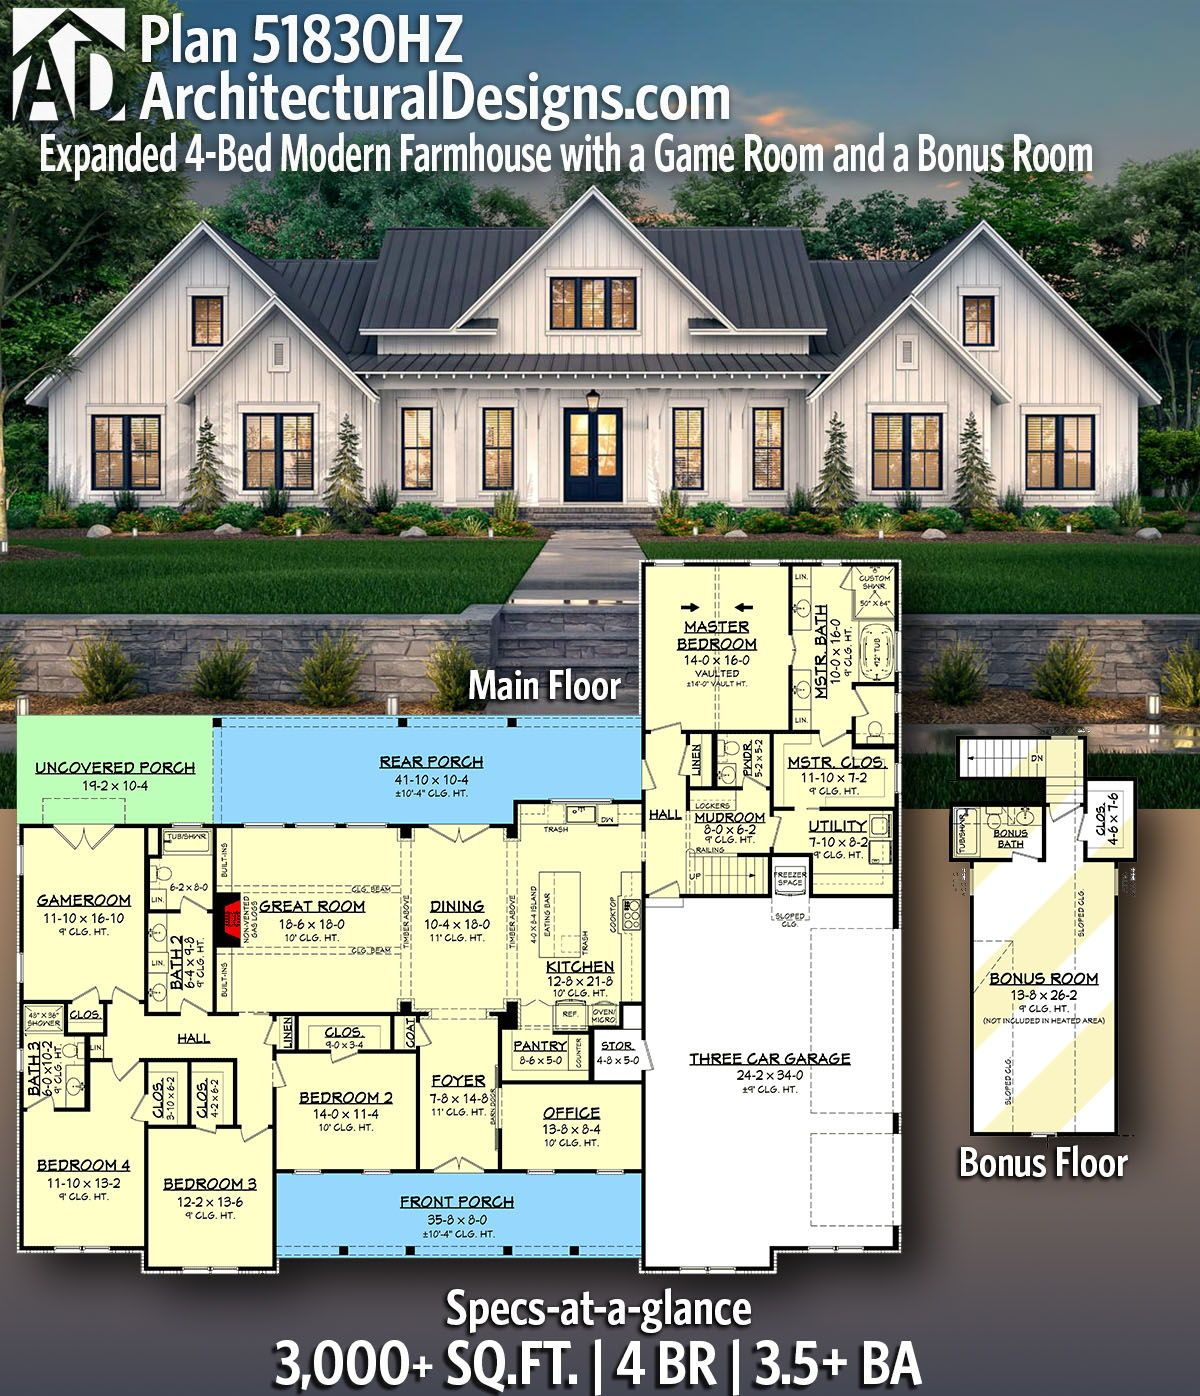 Plan 51830hz Expanded 4 Bed Modern Farmhouse With A Game Room And A Bonus Room Modern Farmhouse Plans Farmhouse Plans Family House Plans